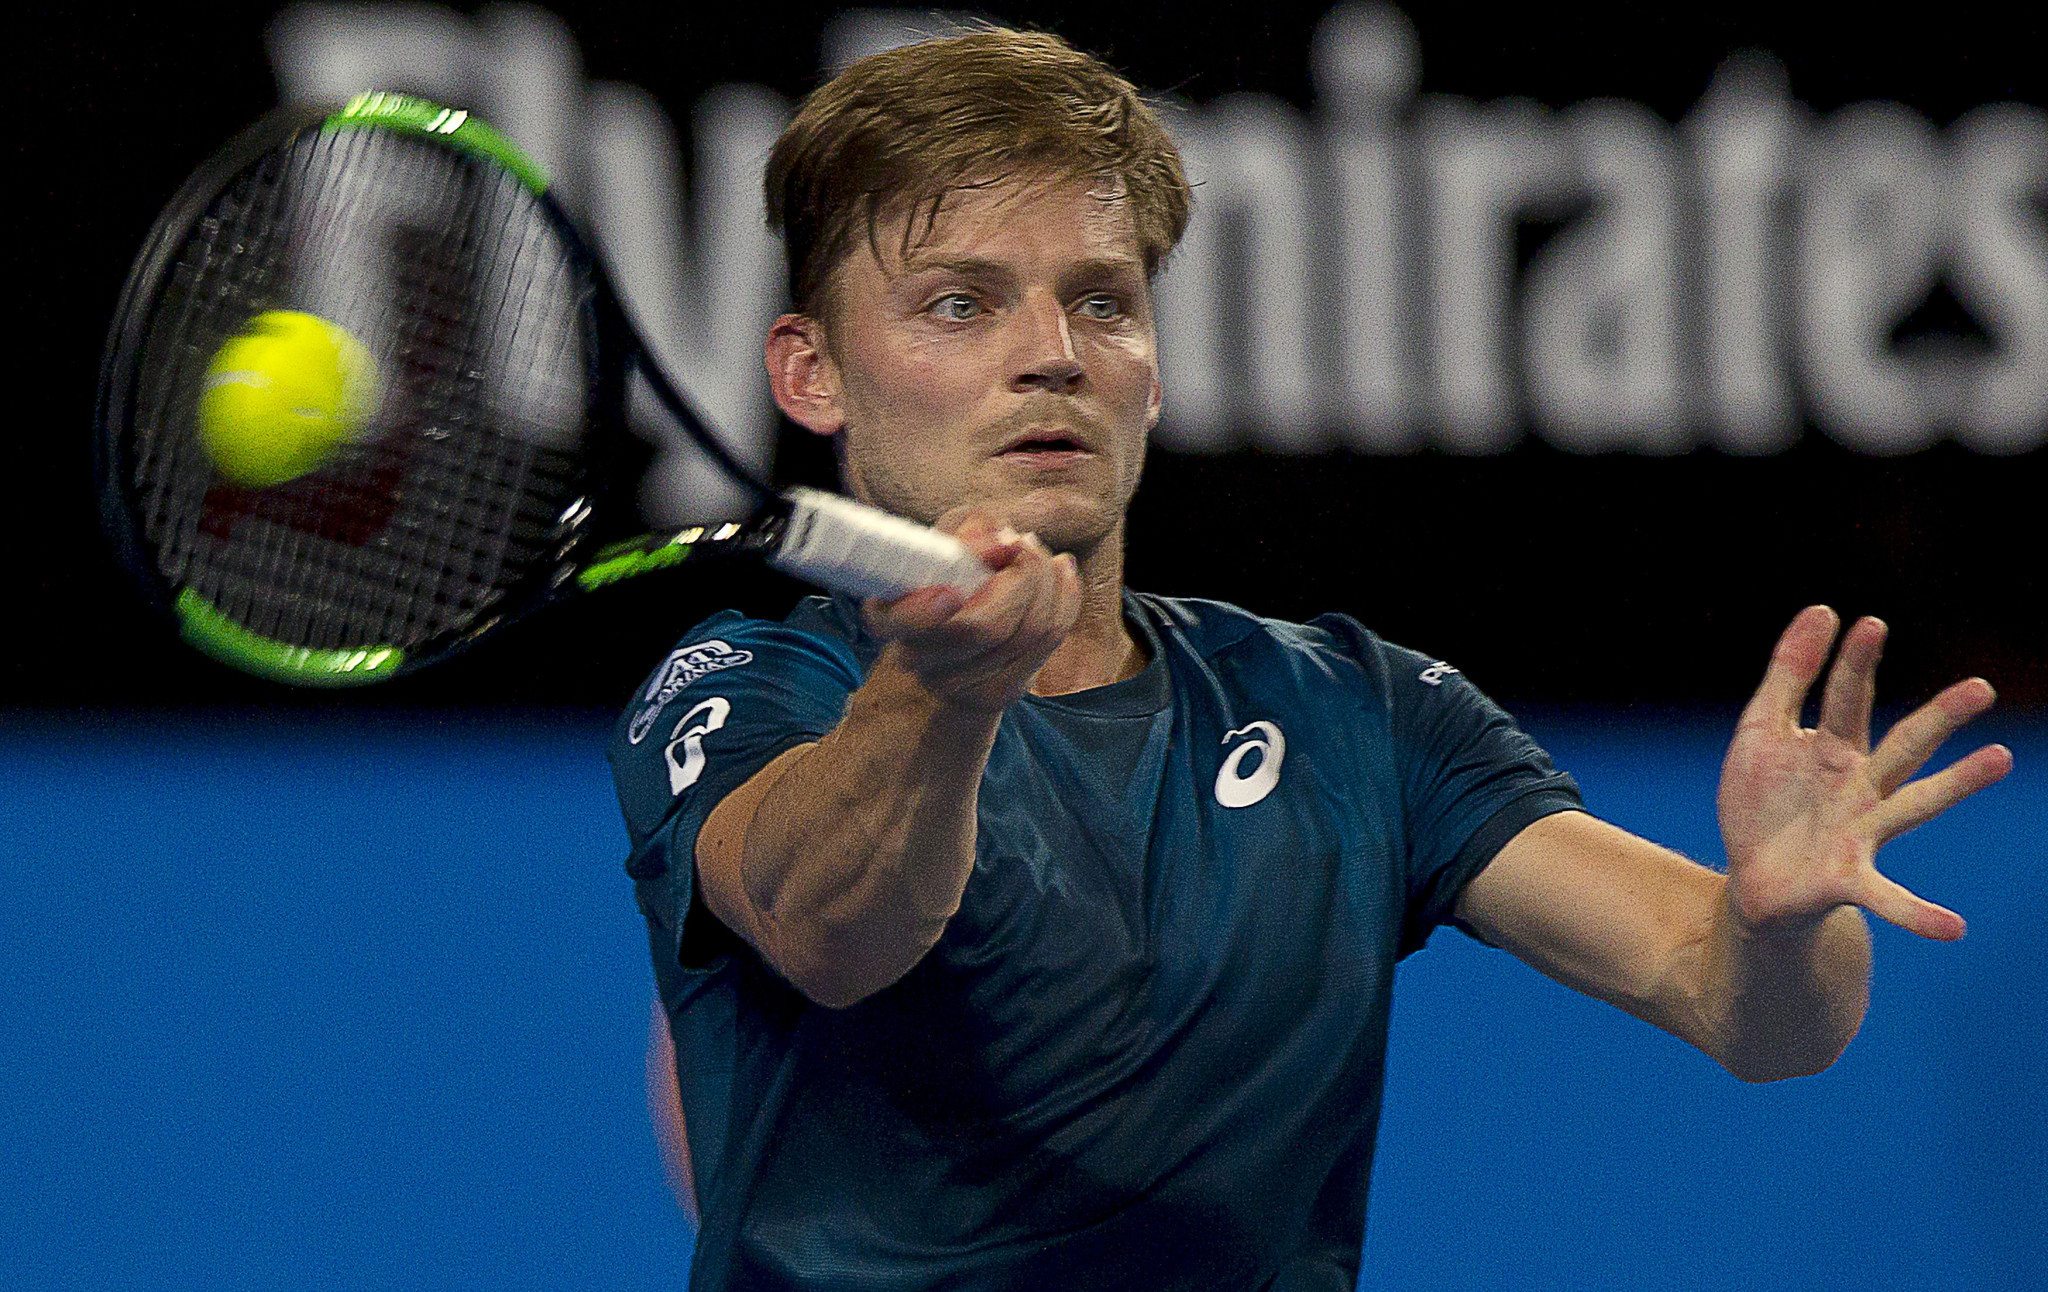 David Goffin beat Thanasi Kokkinakis in straight sets ©Getty Images